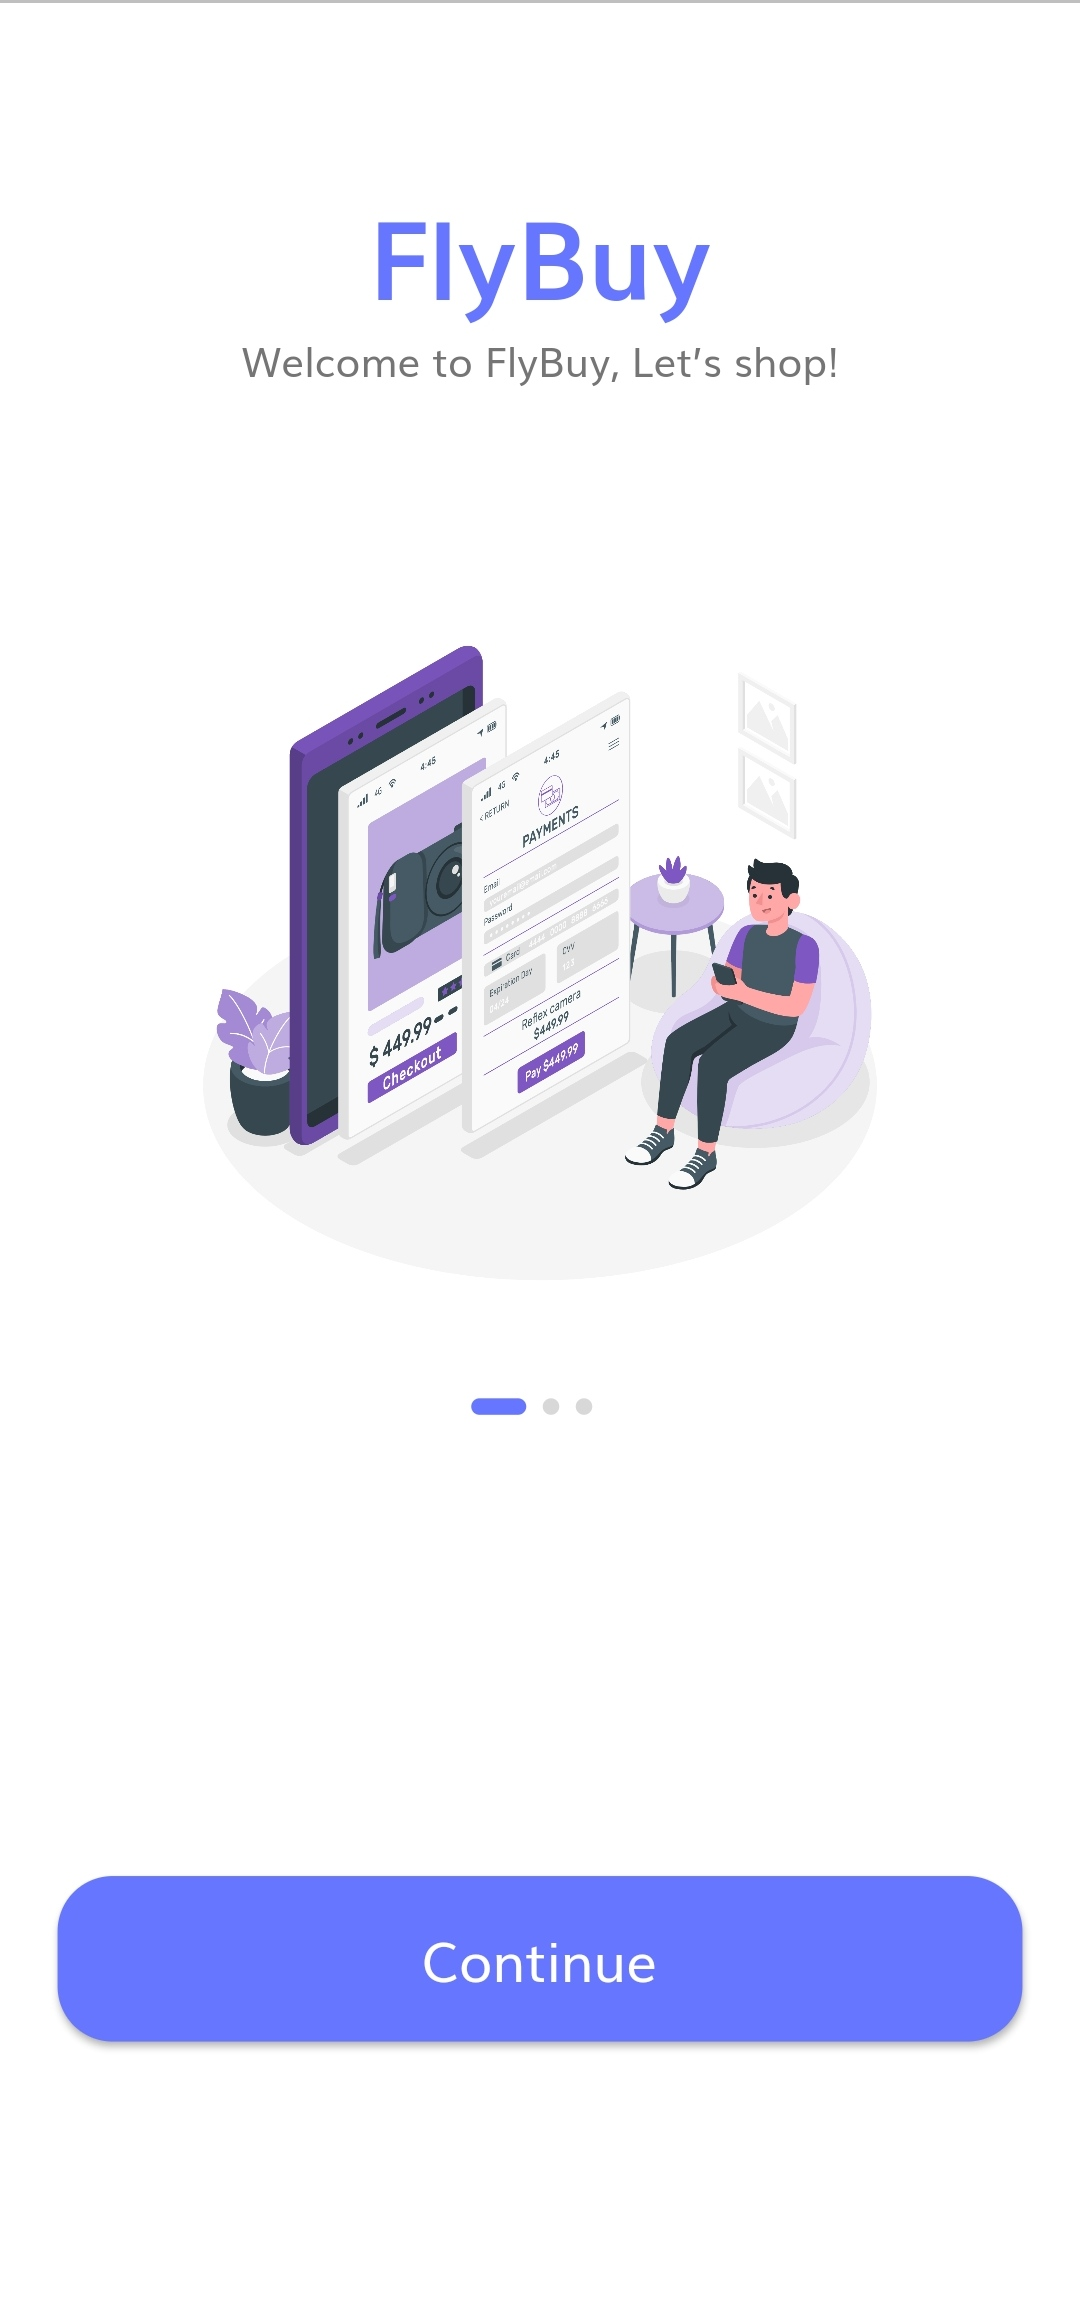 A full E-commerce app with nice UI consists of on-boarding, login, sign-up, home